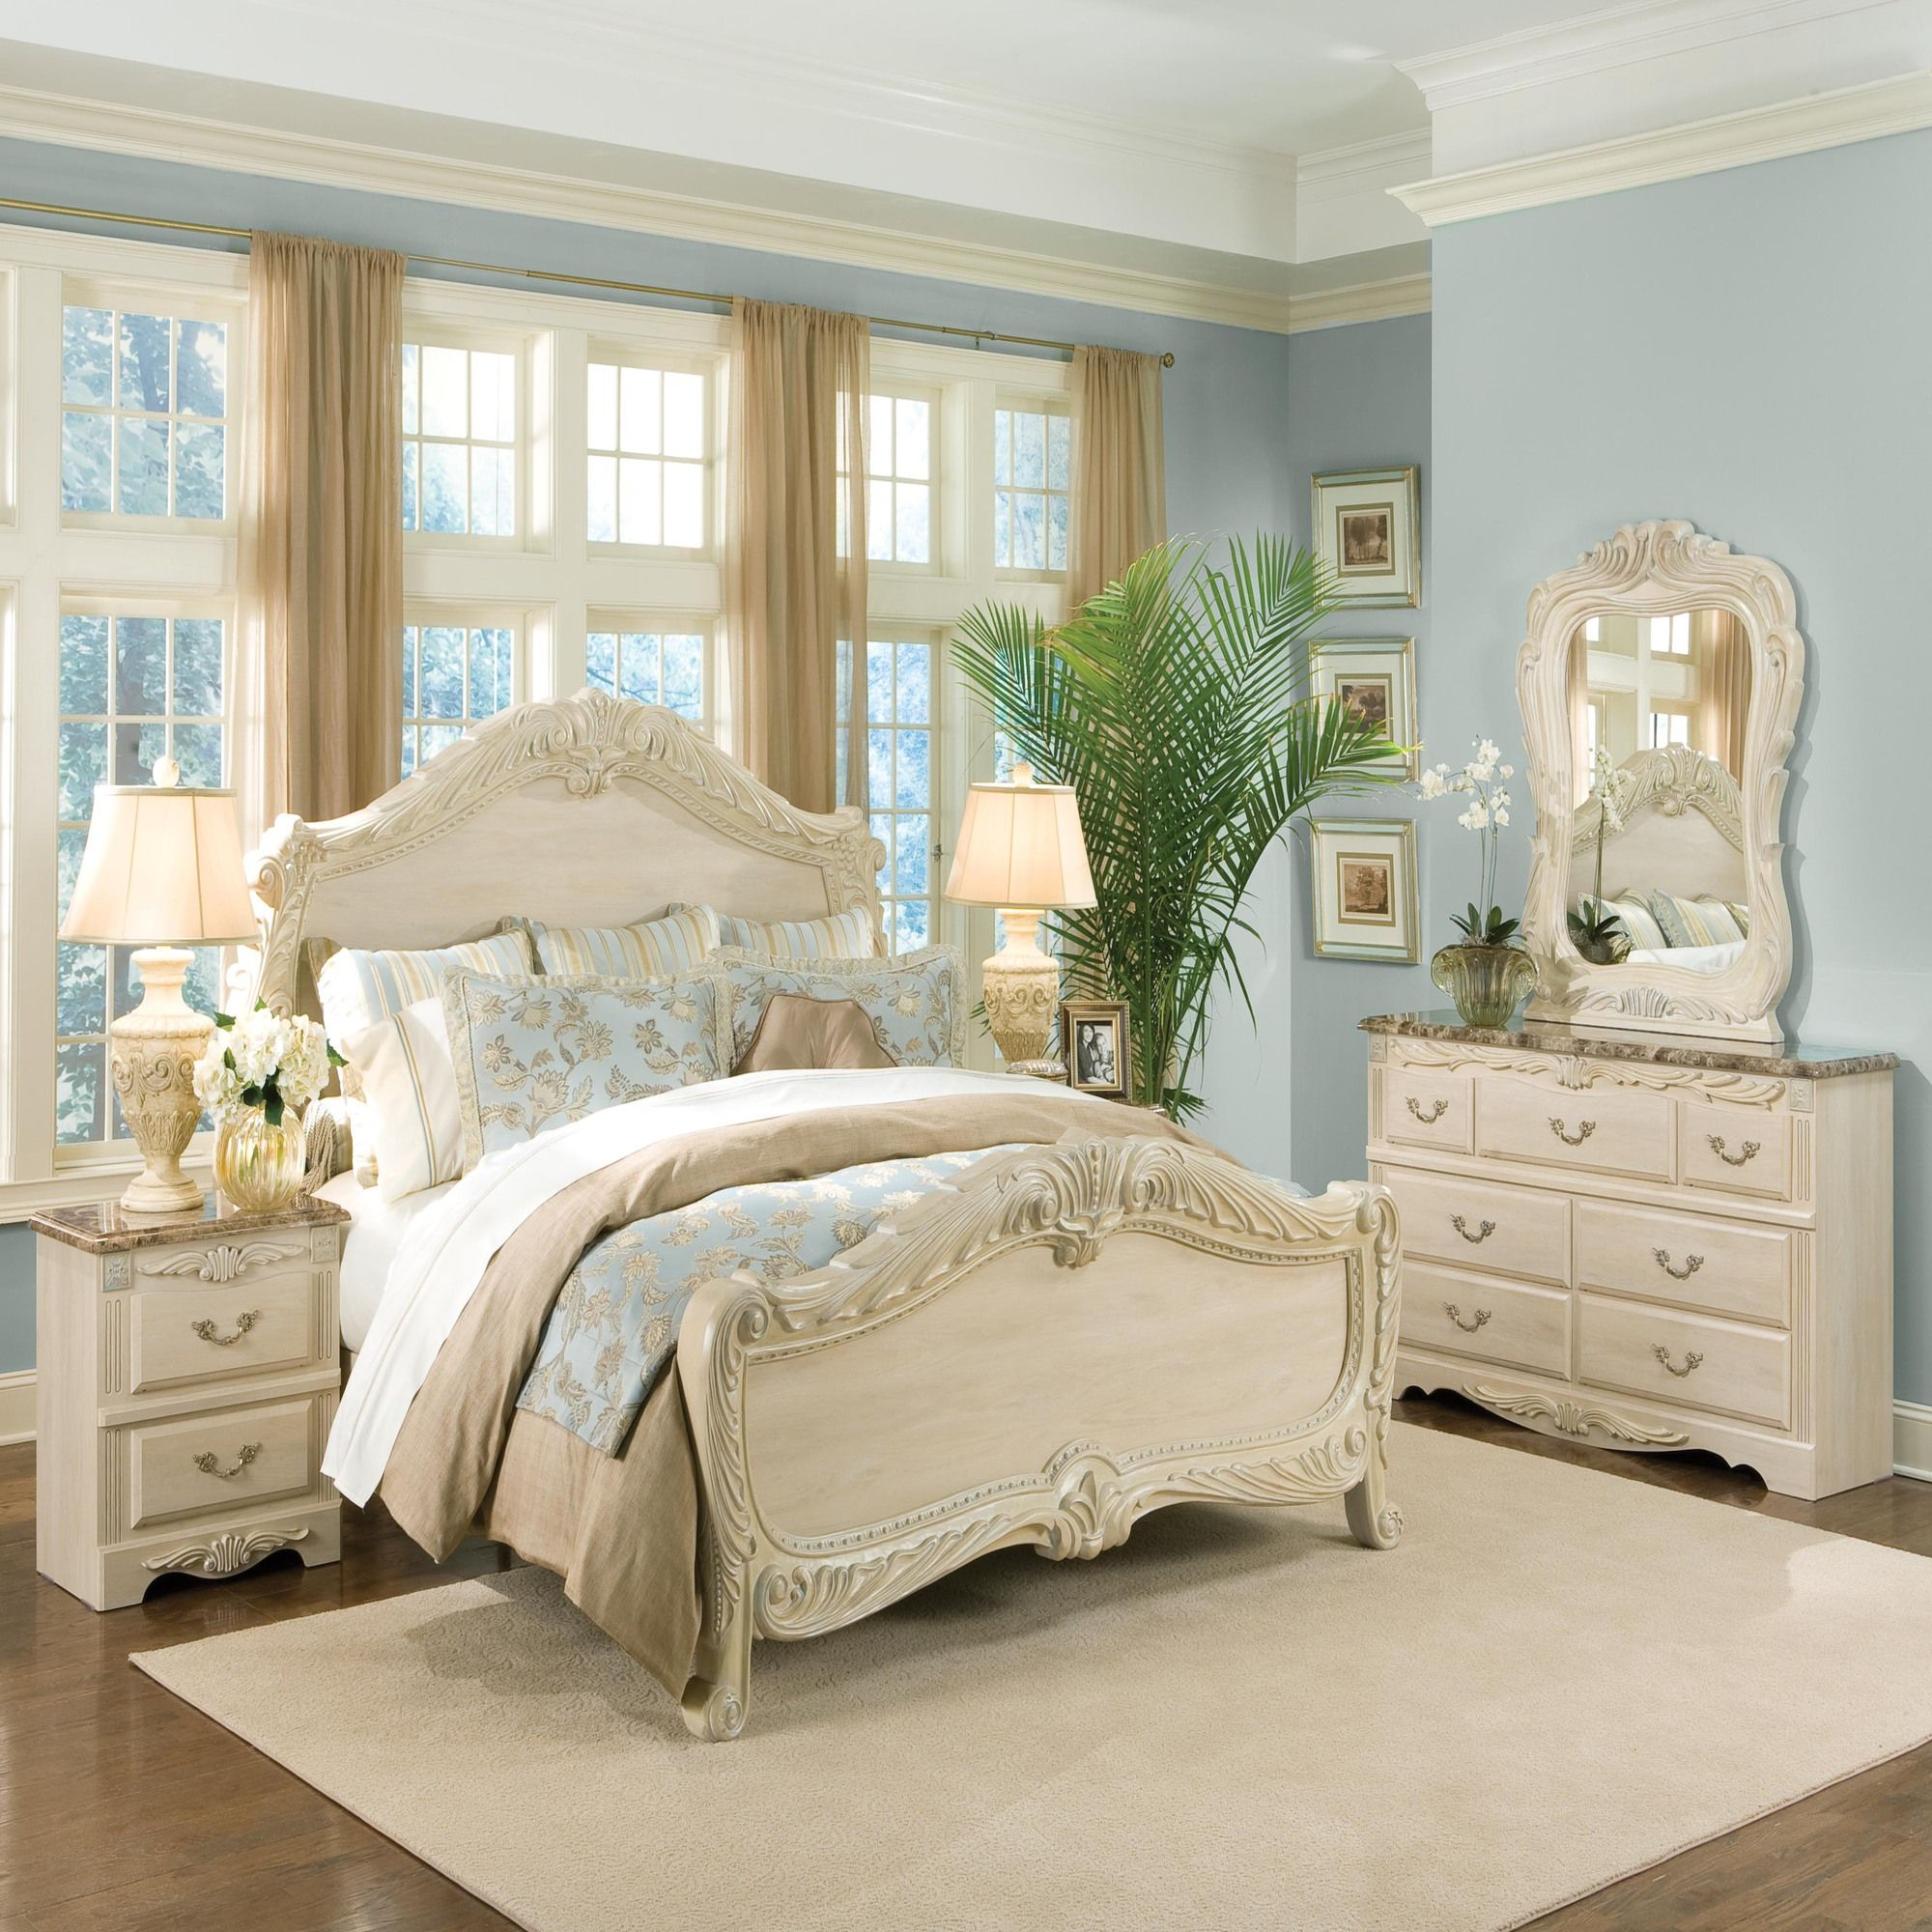 Antique White Bedroom Sets with Luxury Furniture Luxury Unique